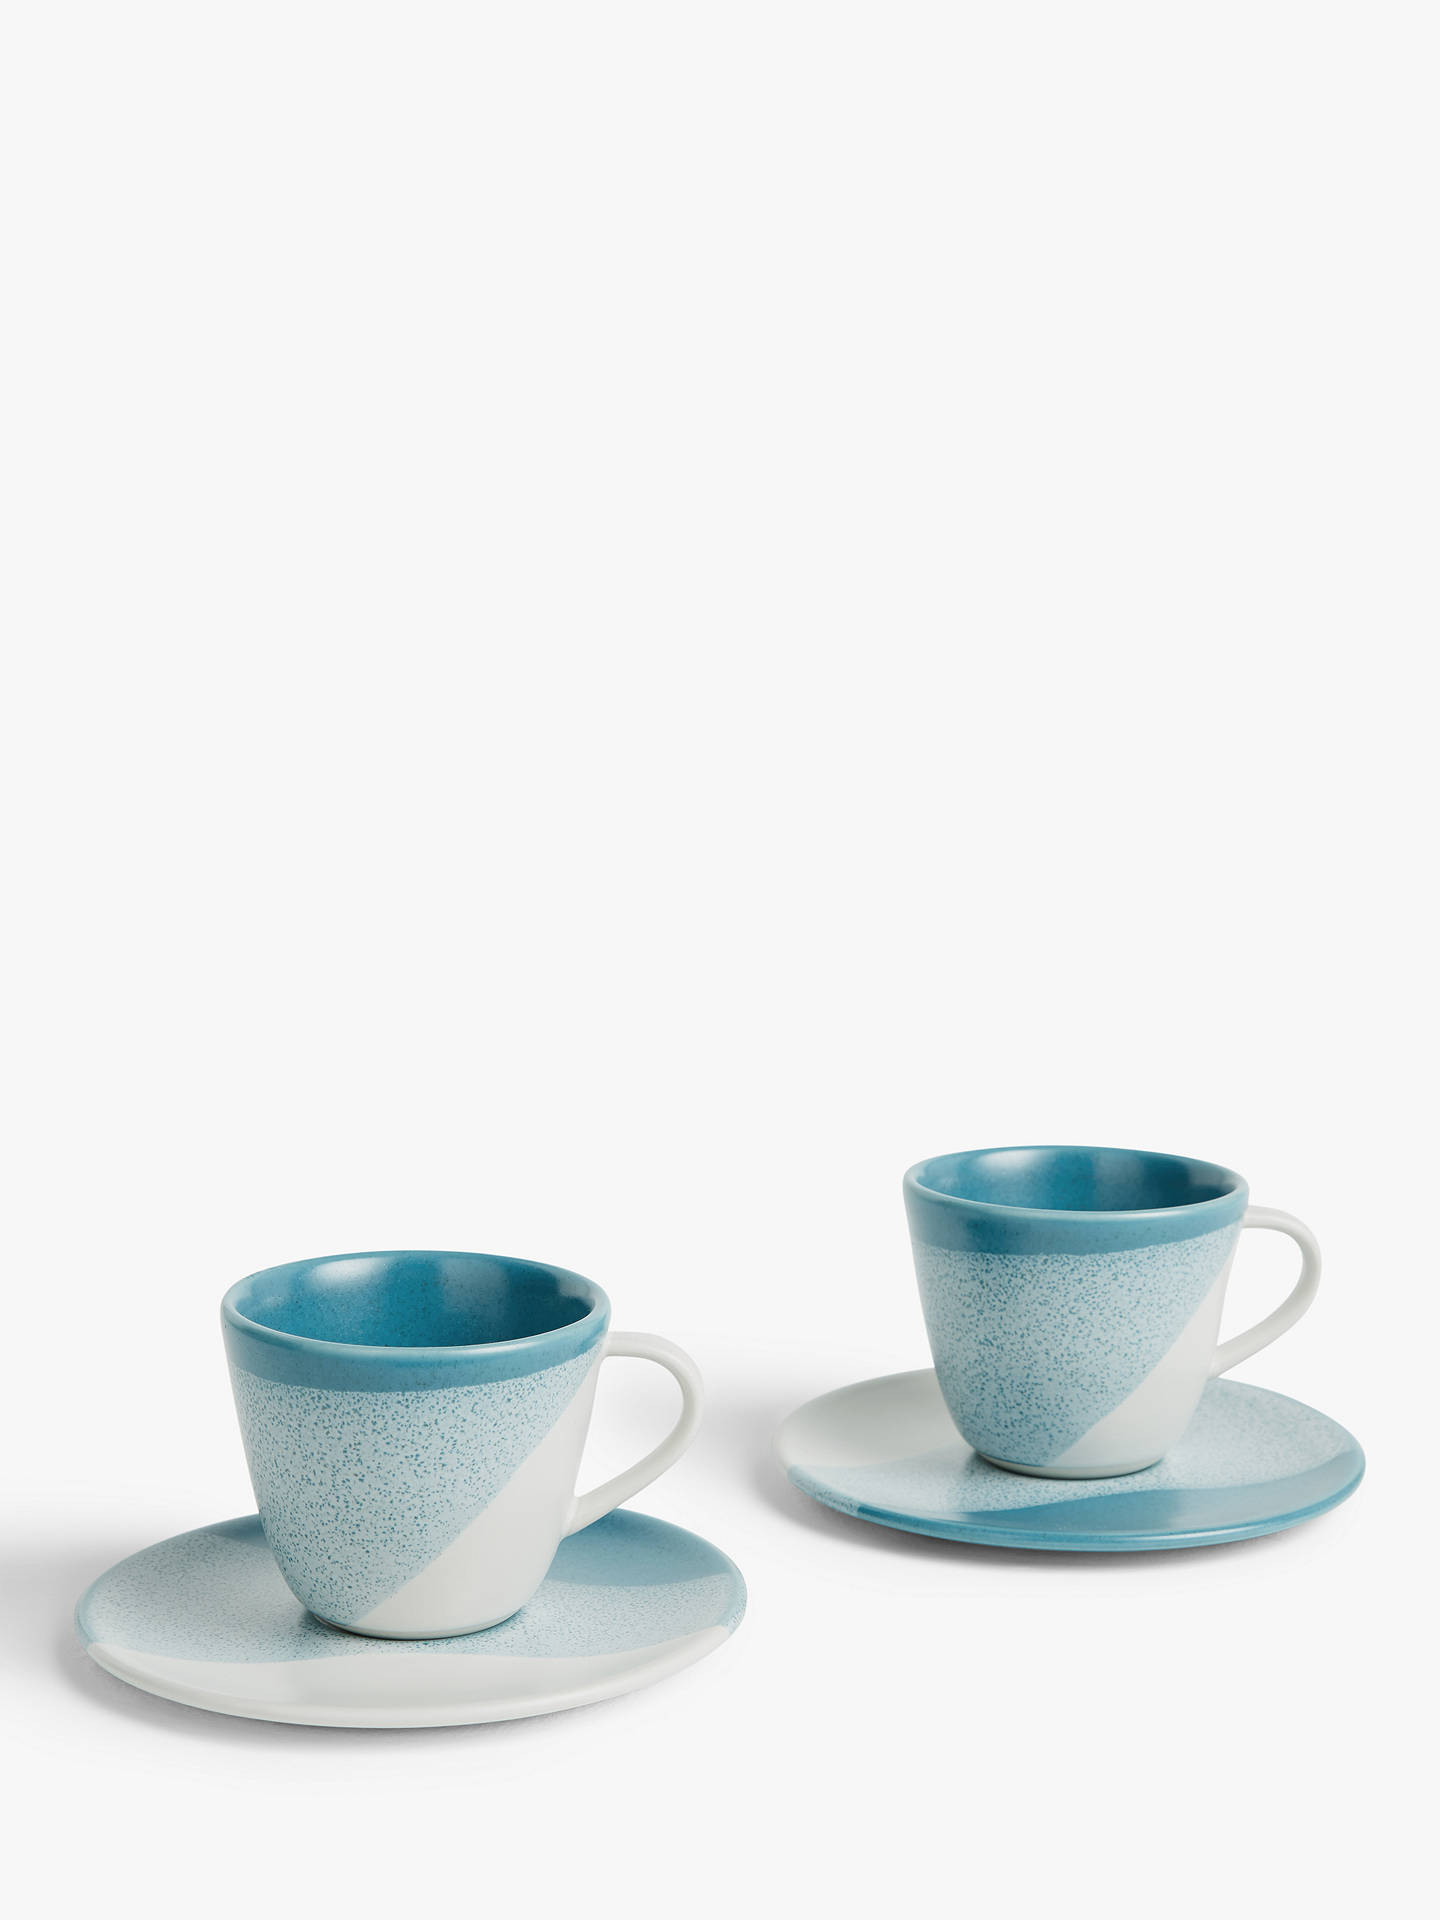 Buy LEON Supper Club Espresso Cup & Saucer, 100ml, Set of 2, Teal Online at johnlewis.com